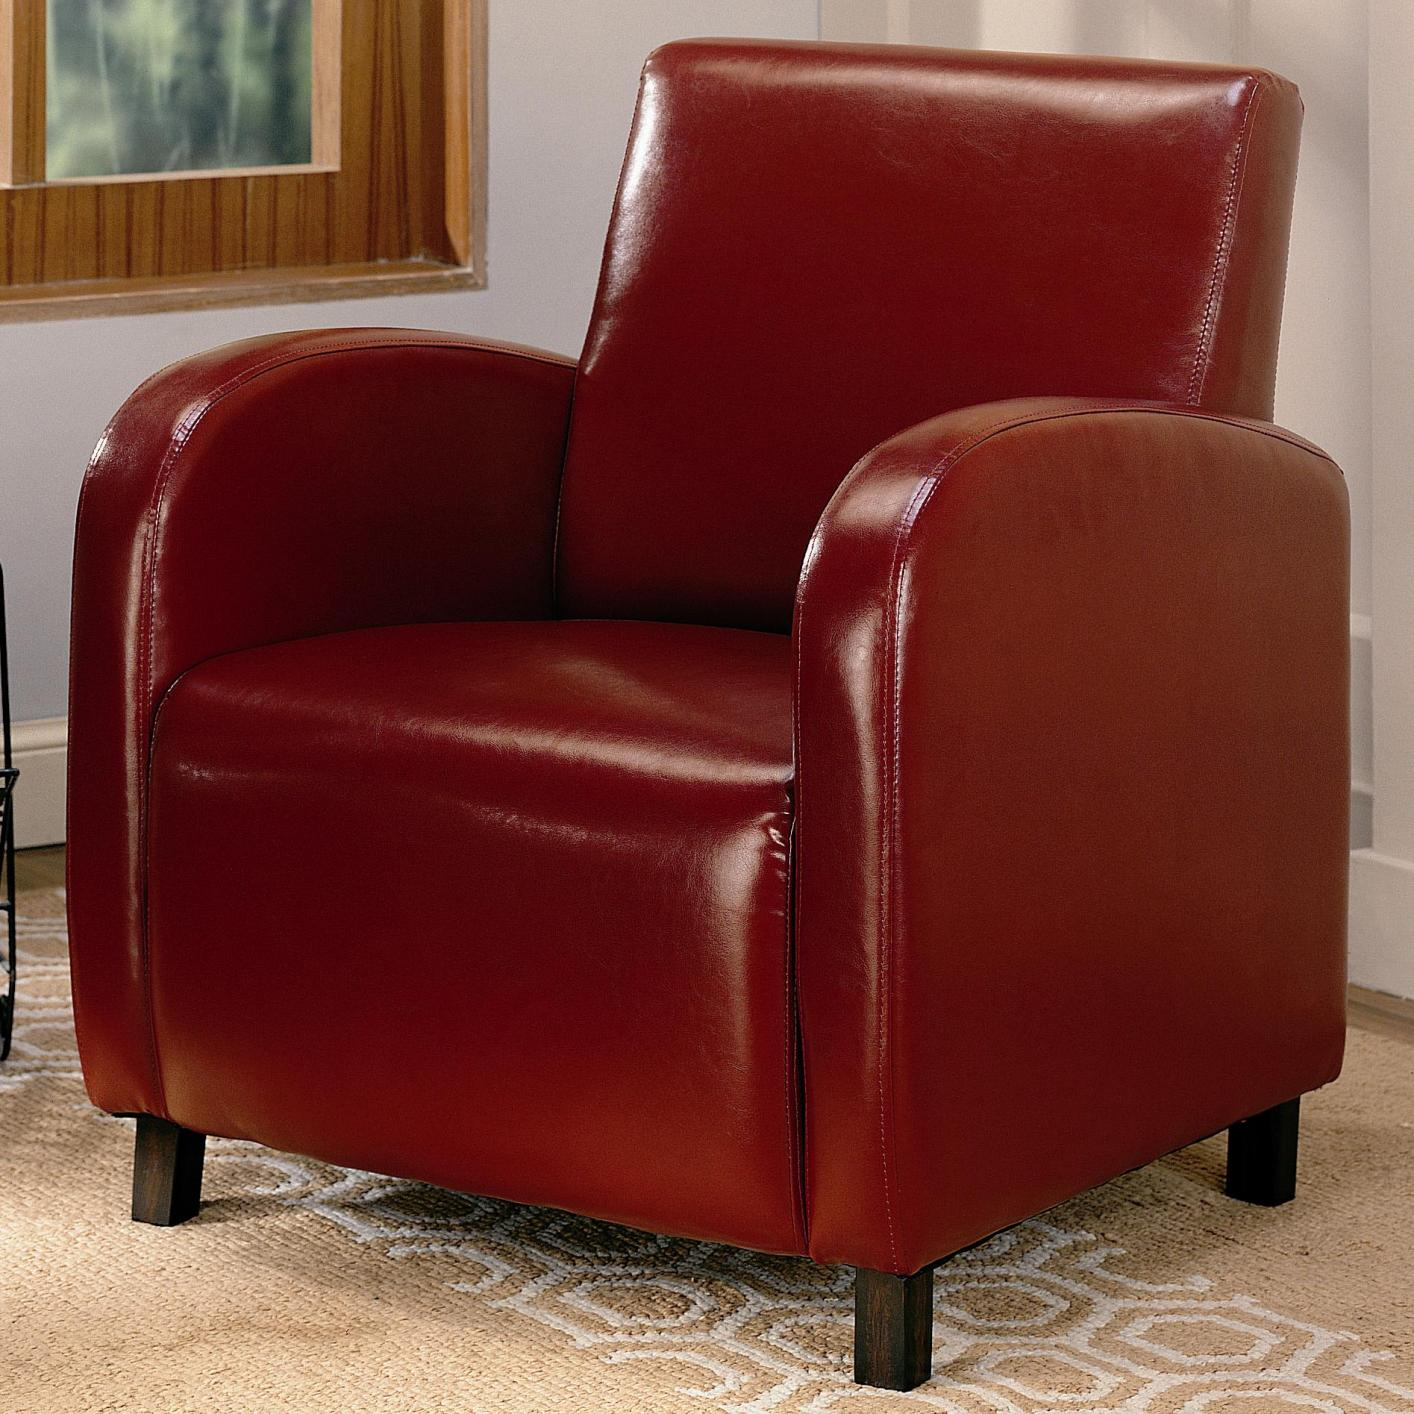 Leather Sofa Chair Red Leather Accent Chair Steal A Sofa Furniture Outlet